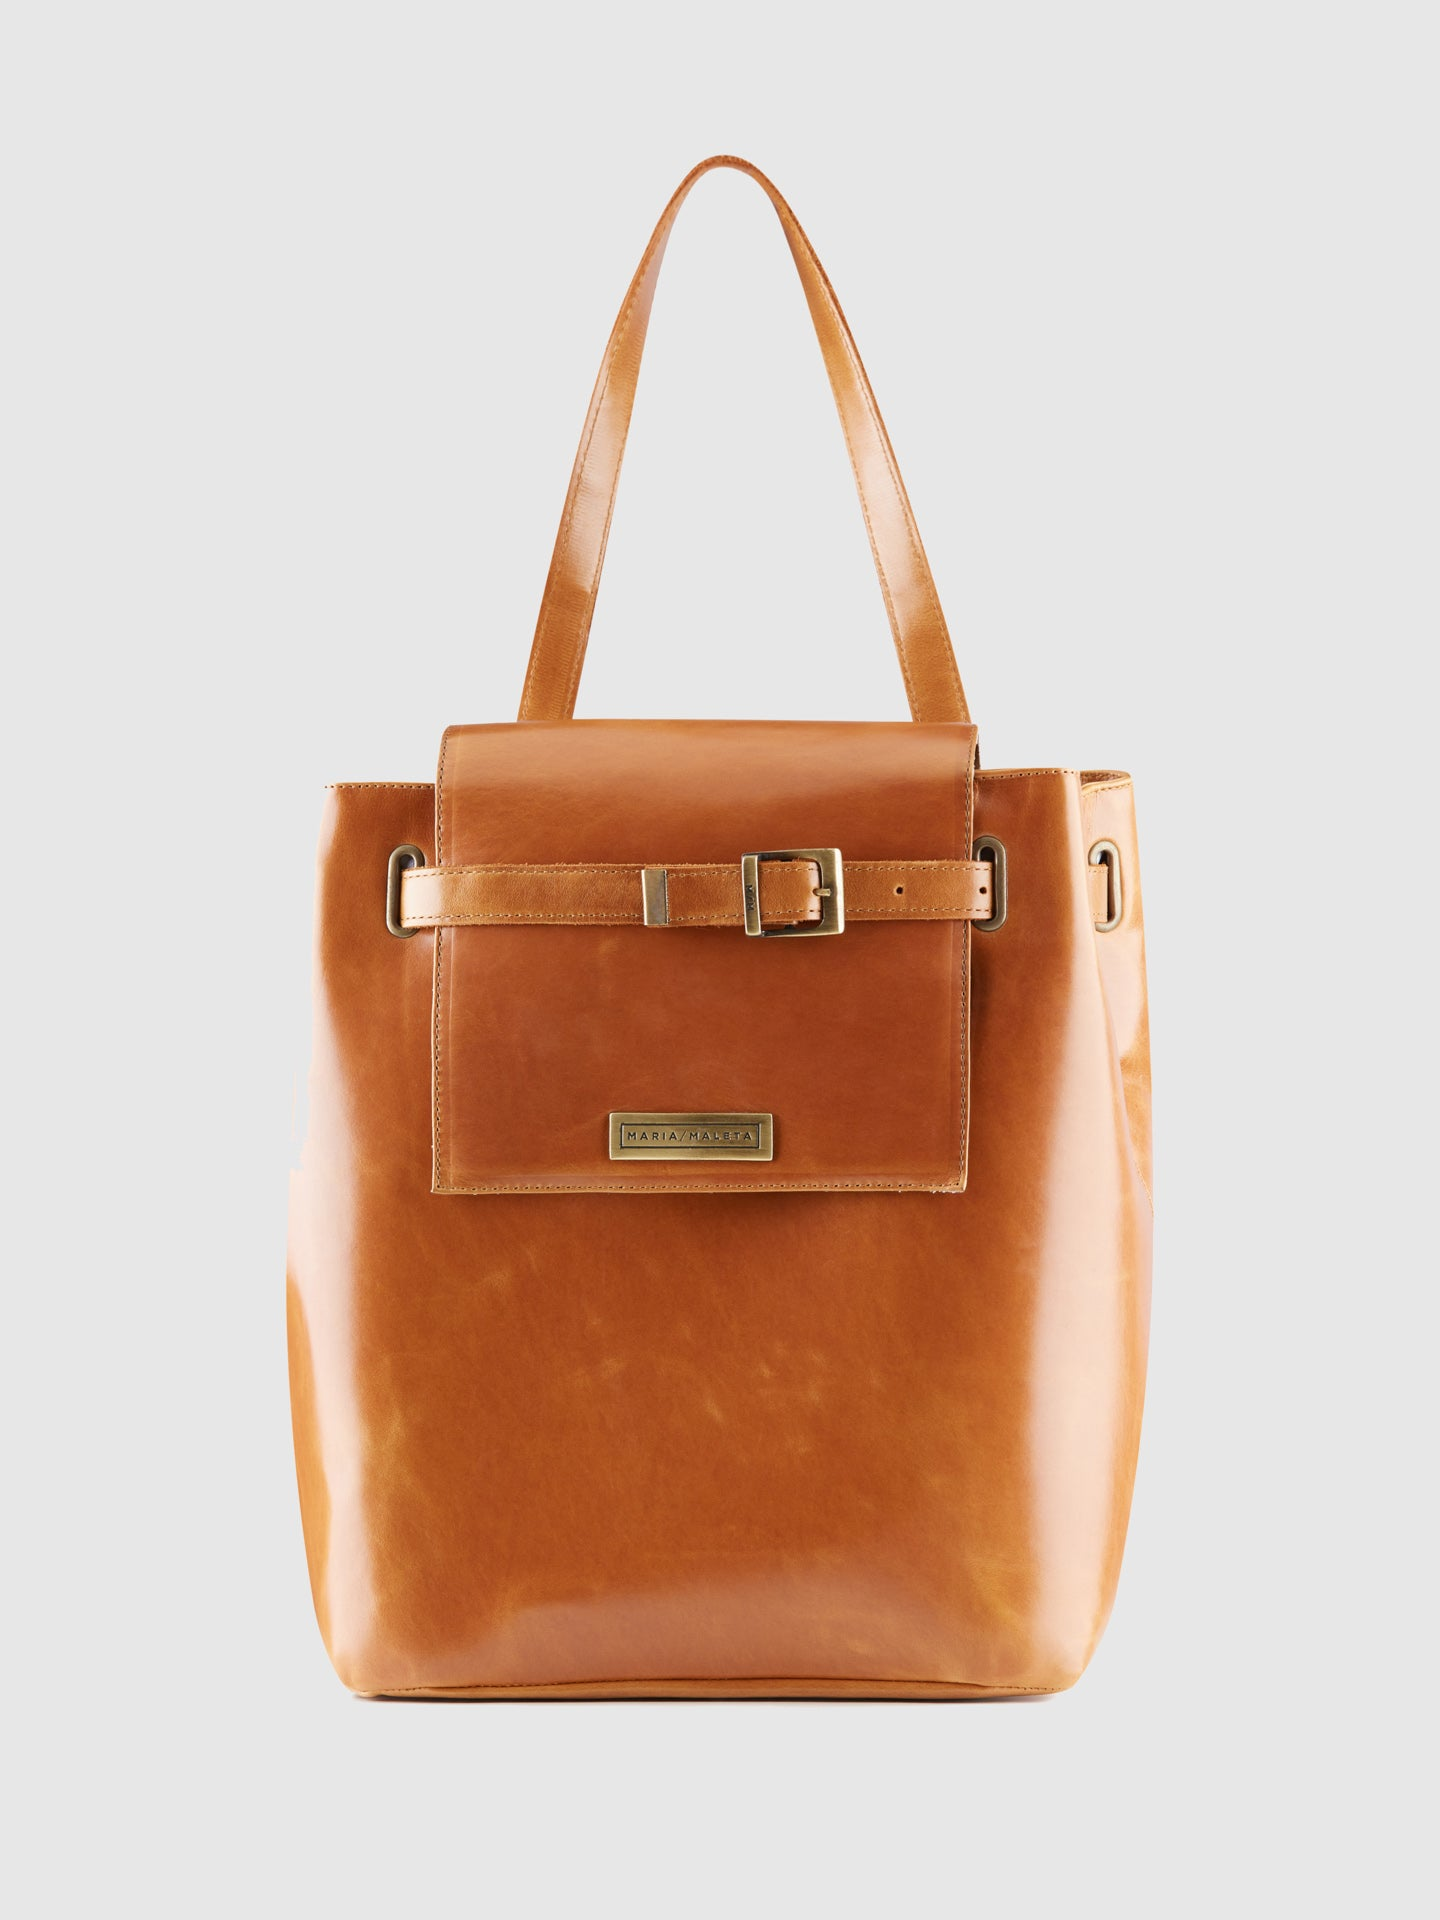 Maria Maleta Brown Leather Shoulder Bag